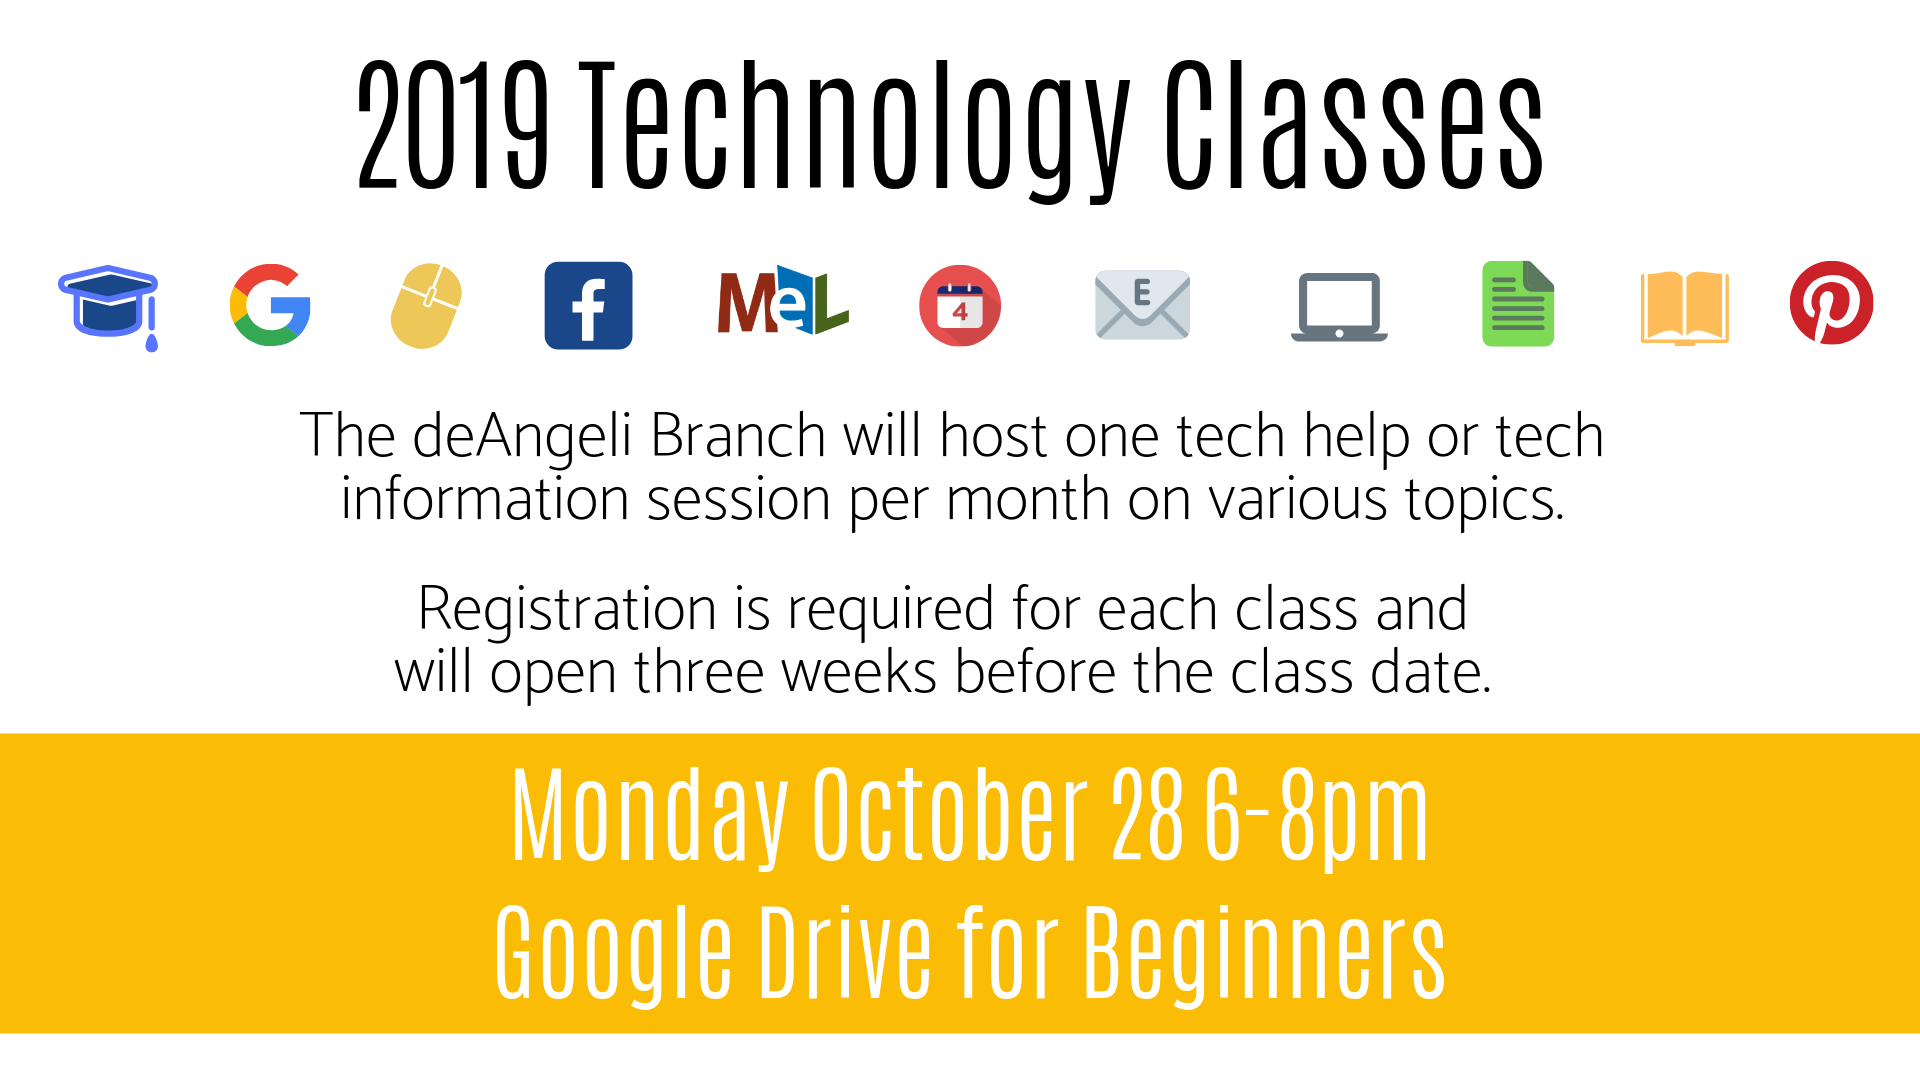 Google Drive for Beginners Technology Session - Monday